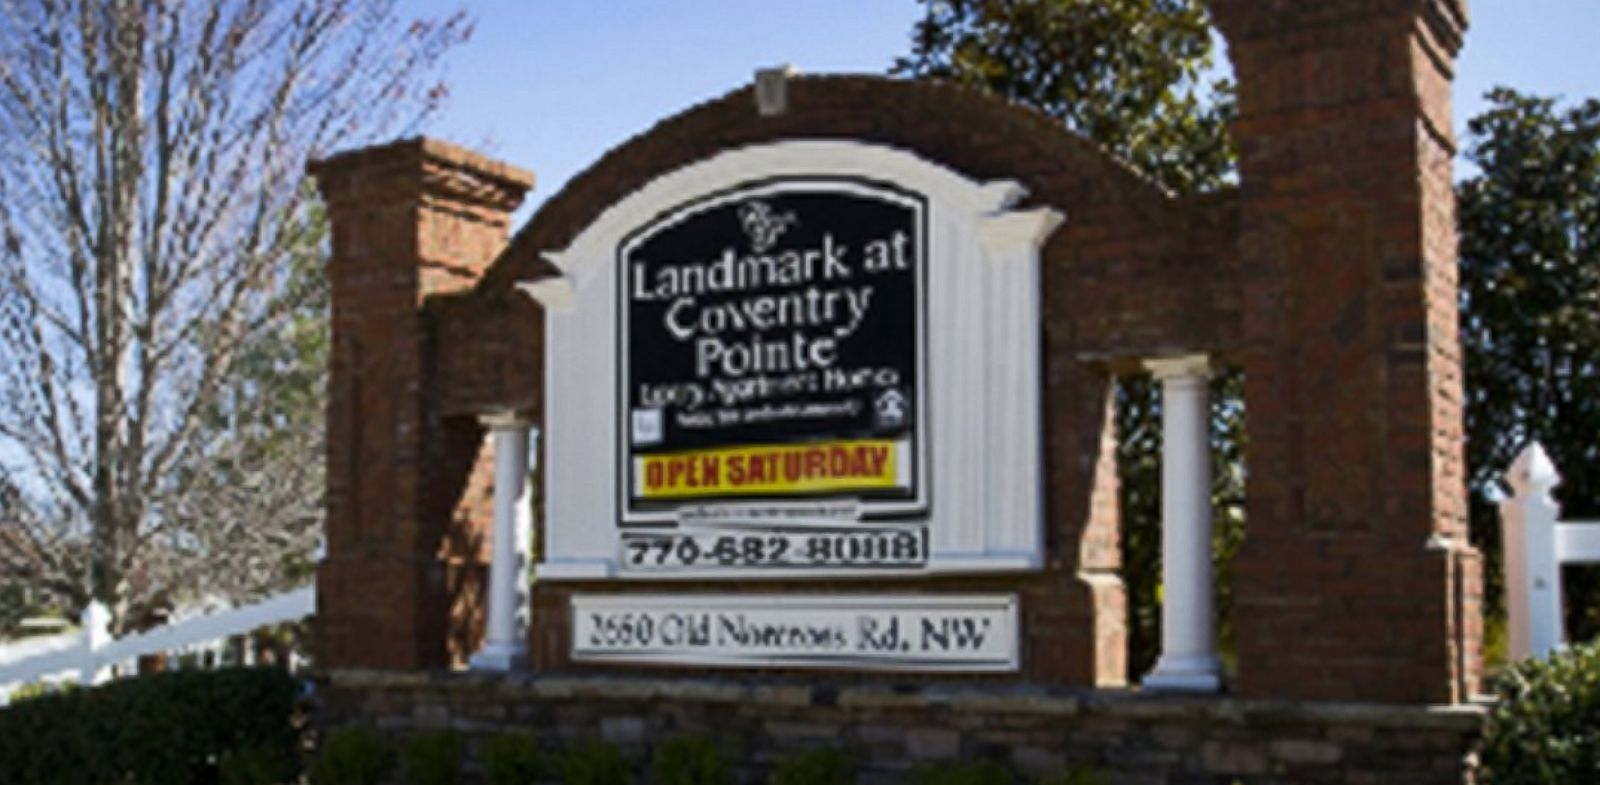 PHOTO: A sign for Landmark at Coventry Pointe apartment complex is shown in this photo from the companys website, www.landmarkatcoventrypointe.com.